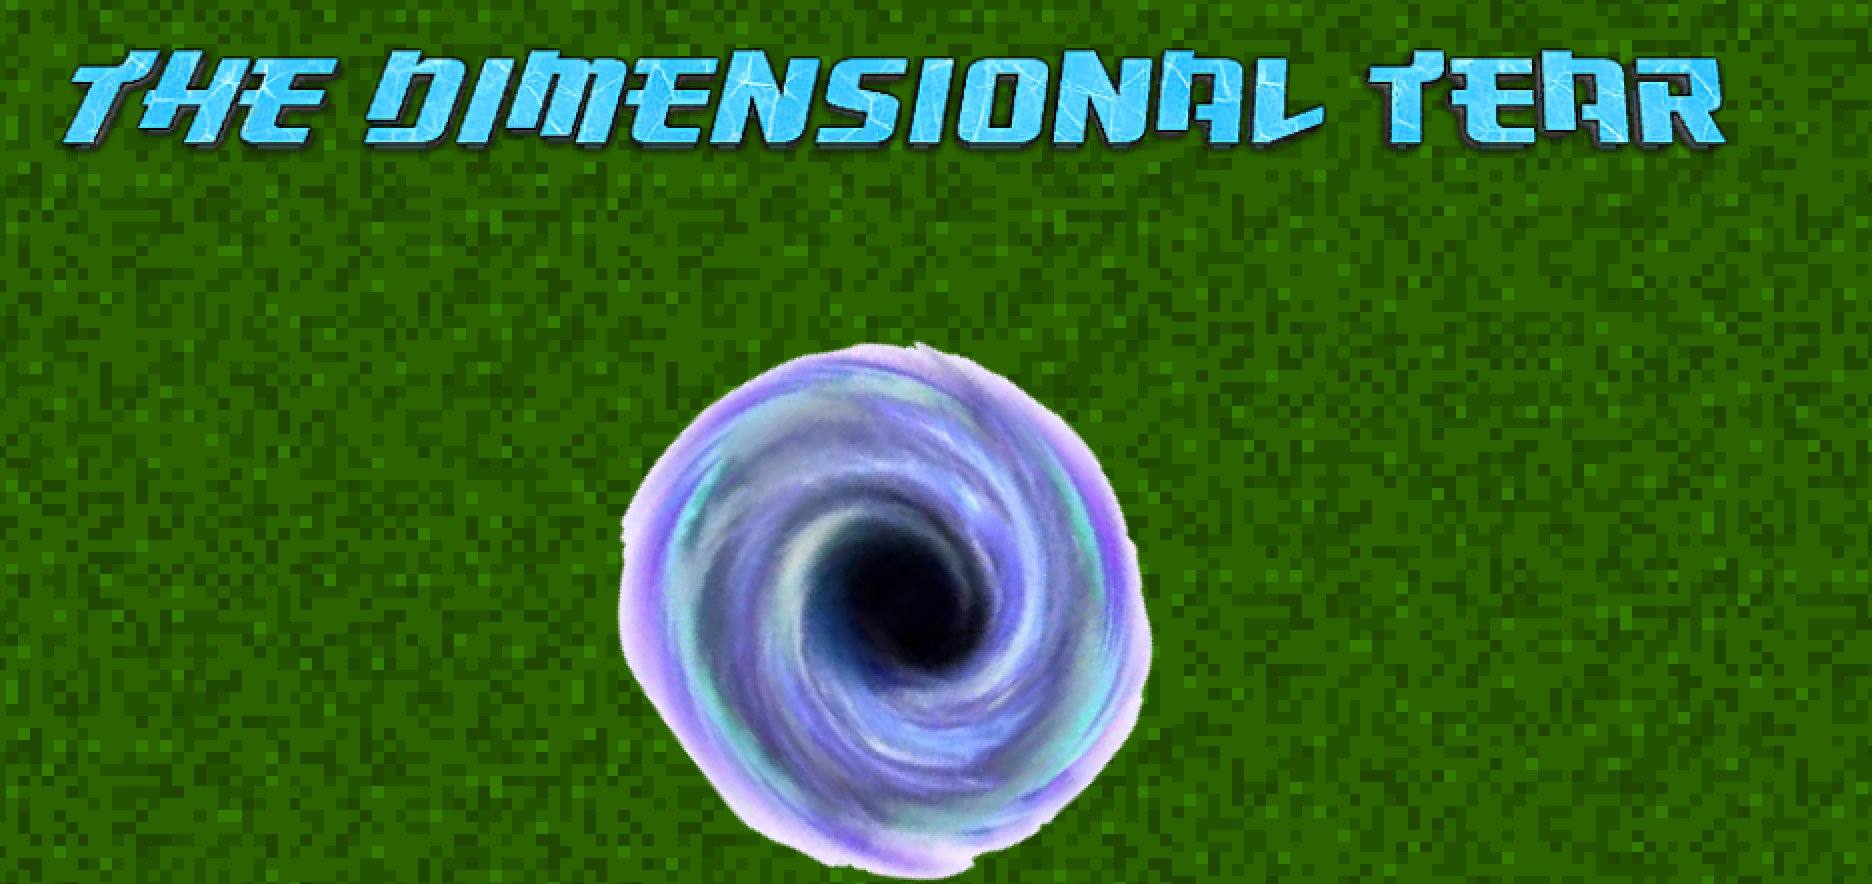 The Dimensional Tear